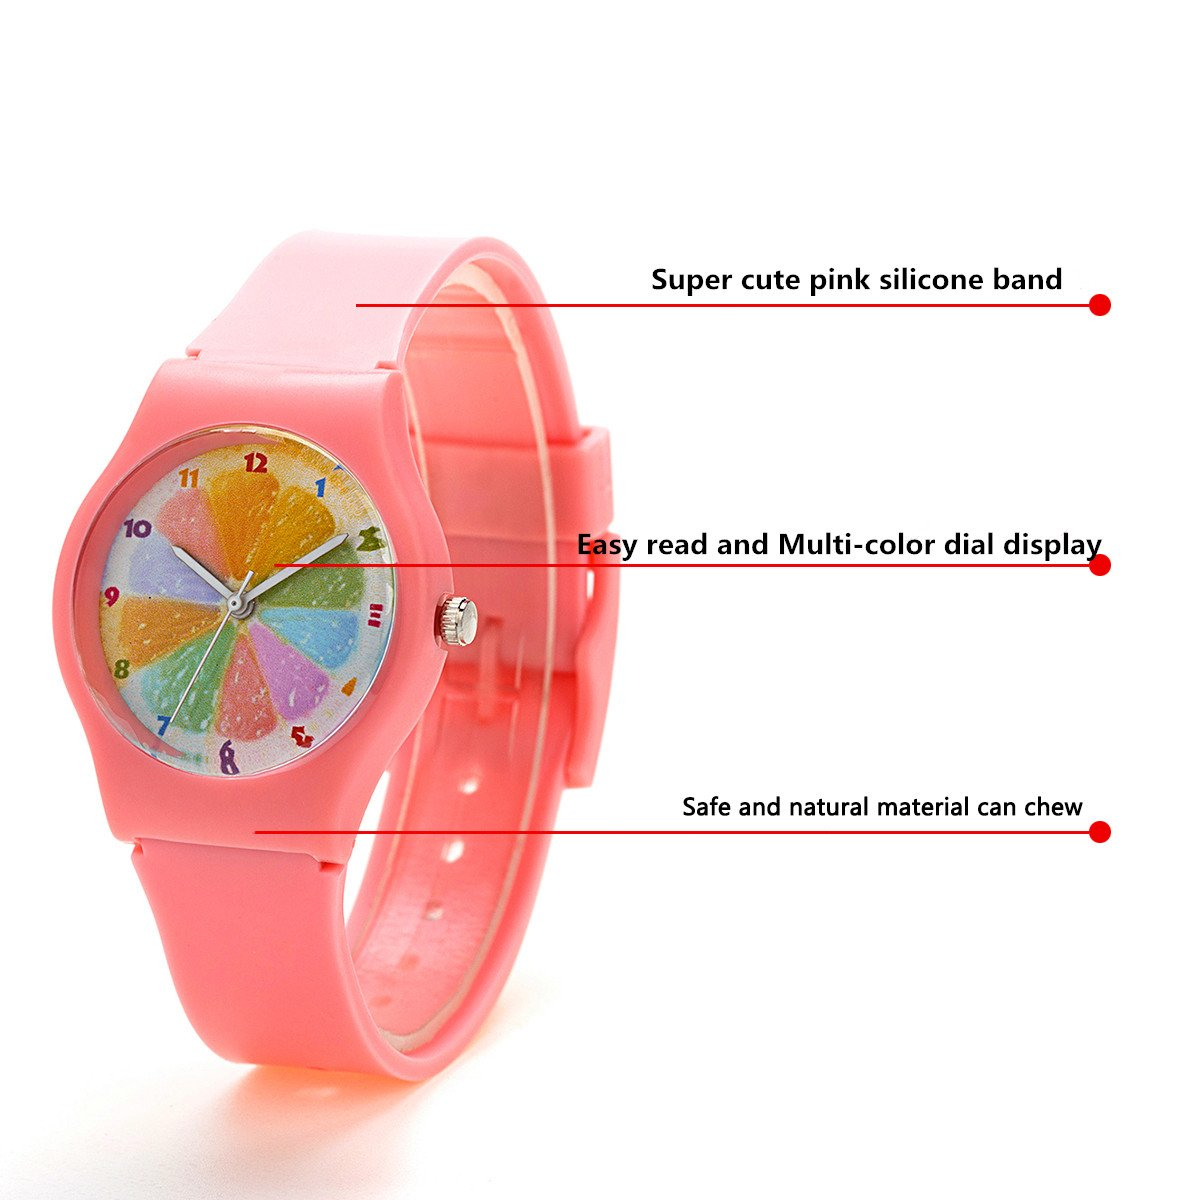 Zeiger New Cool Kids Young Girls Analog Display Easy Read Time Teacher Watch with Rainbow Dial Silicone Band (Pink)